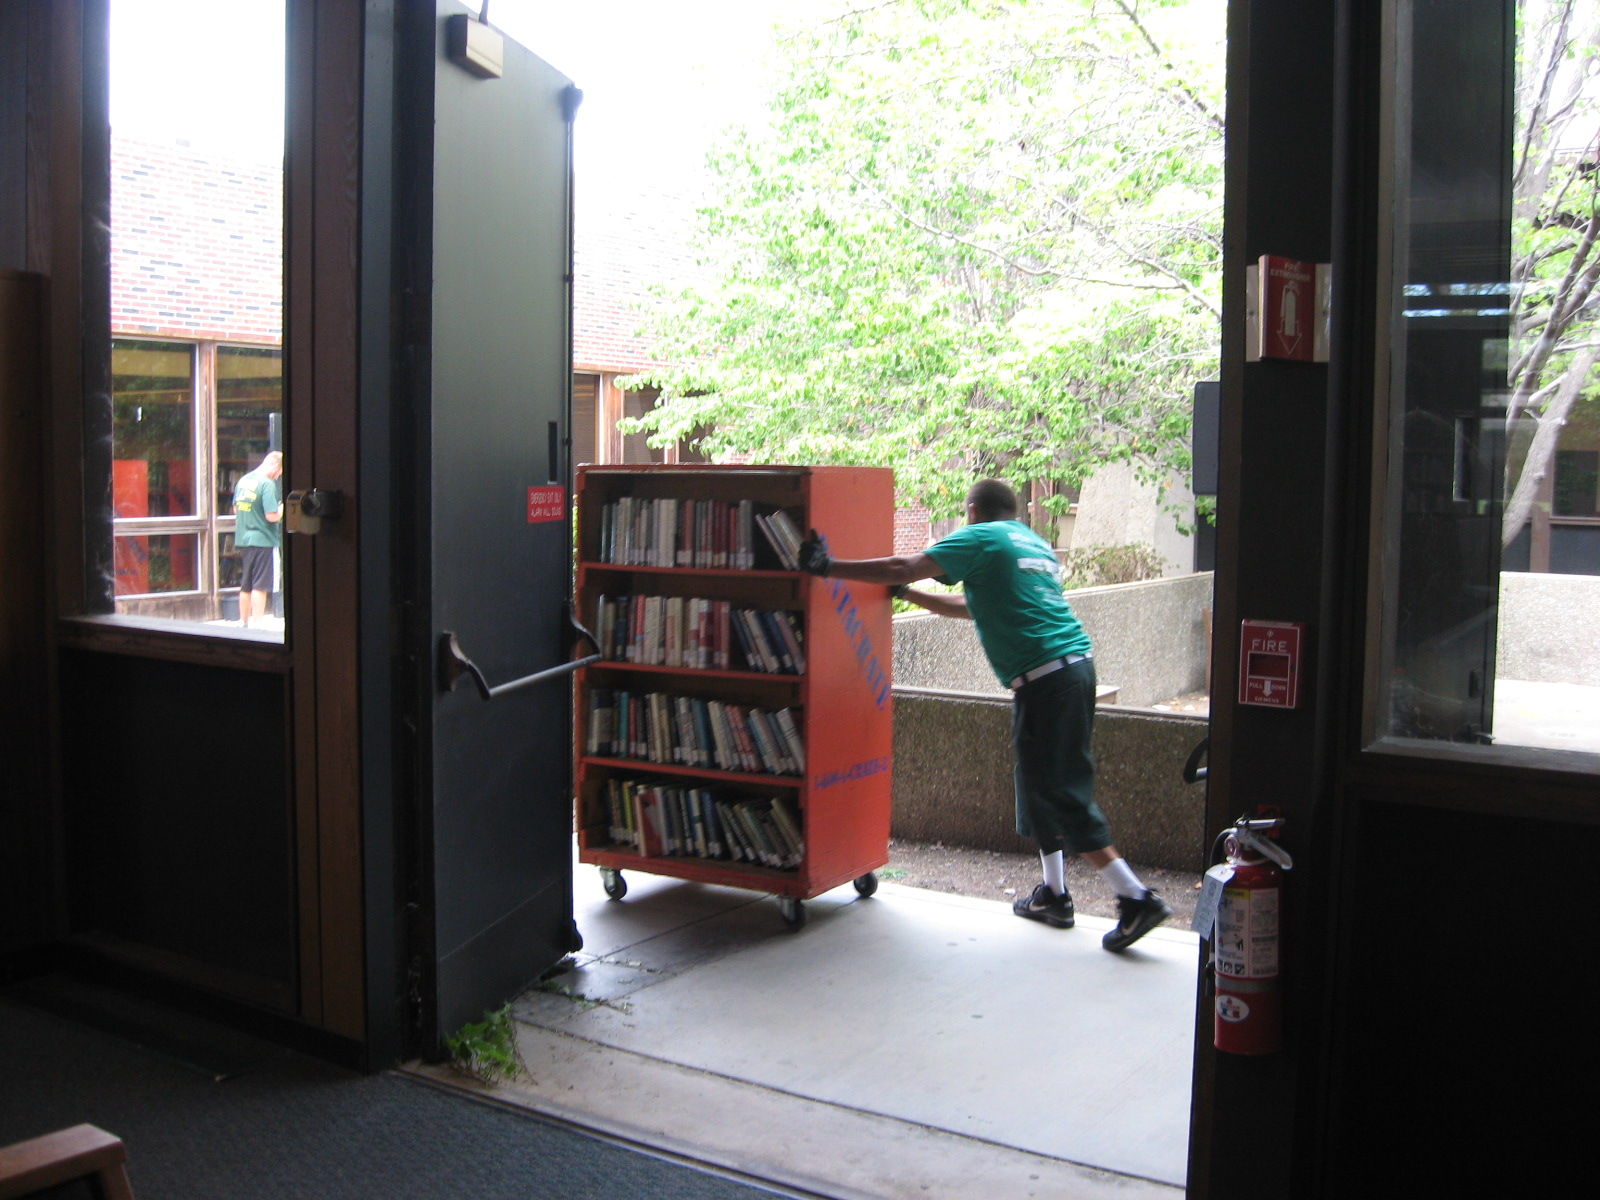 moving library books to the temporary location